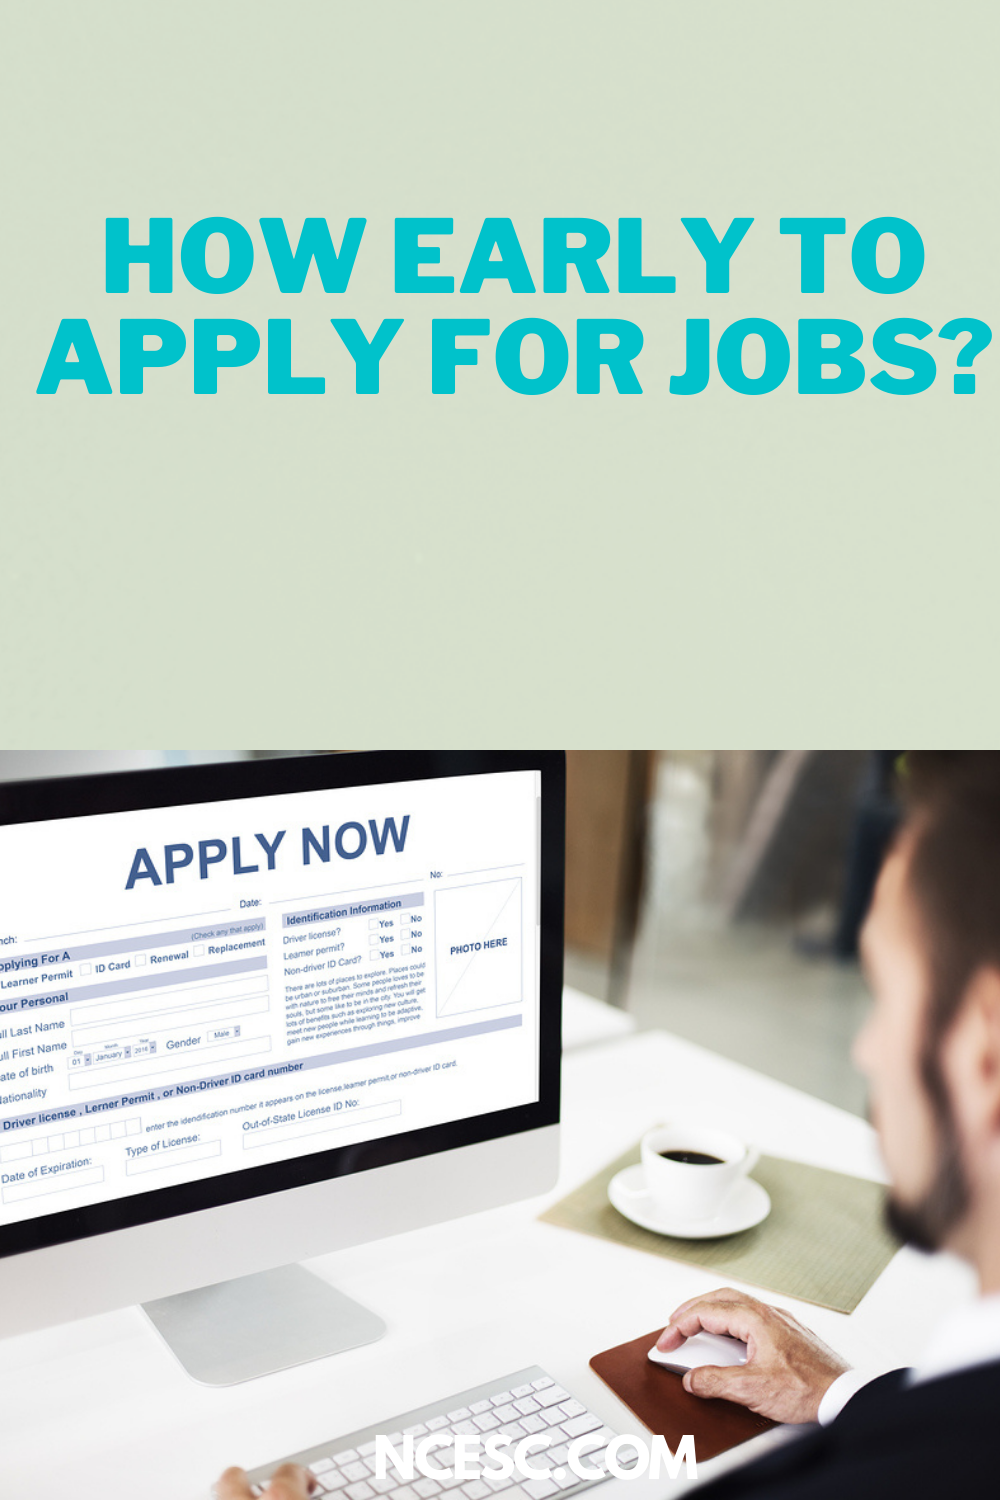 how early to apply for jobs